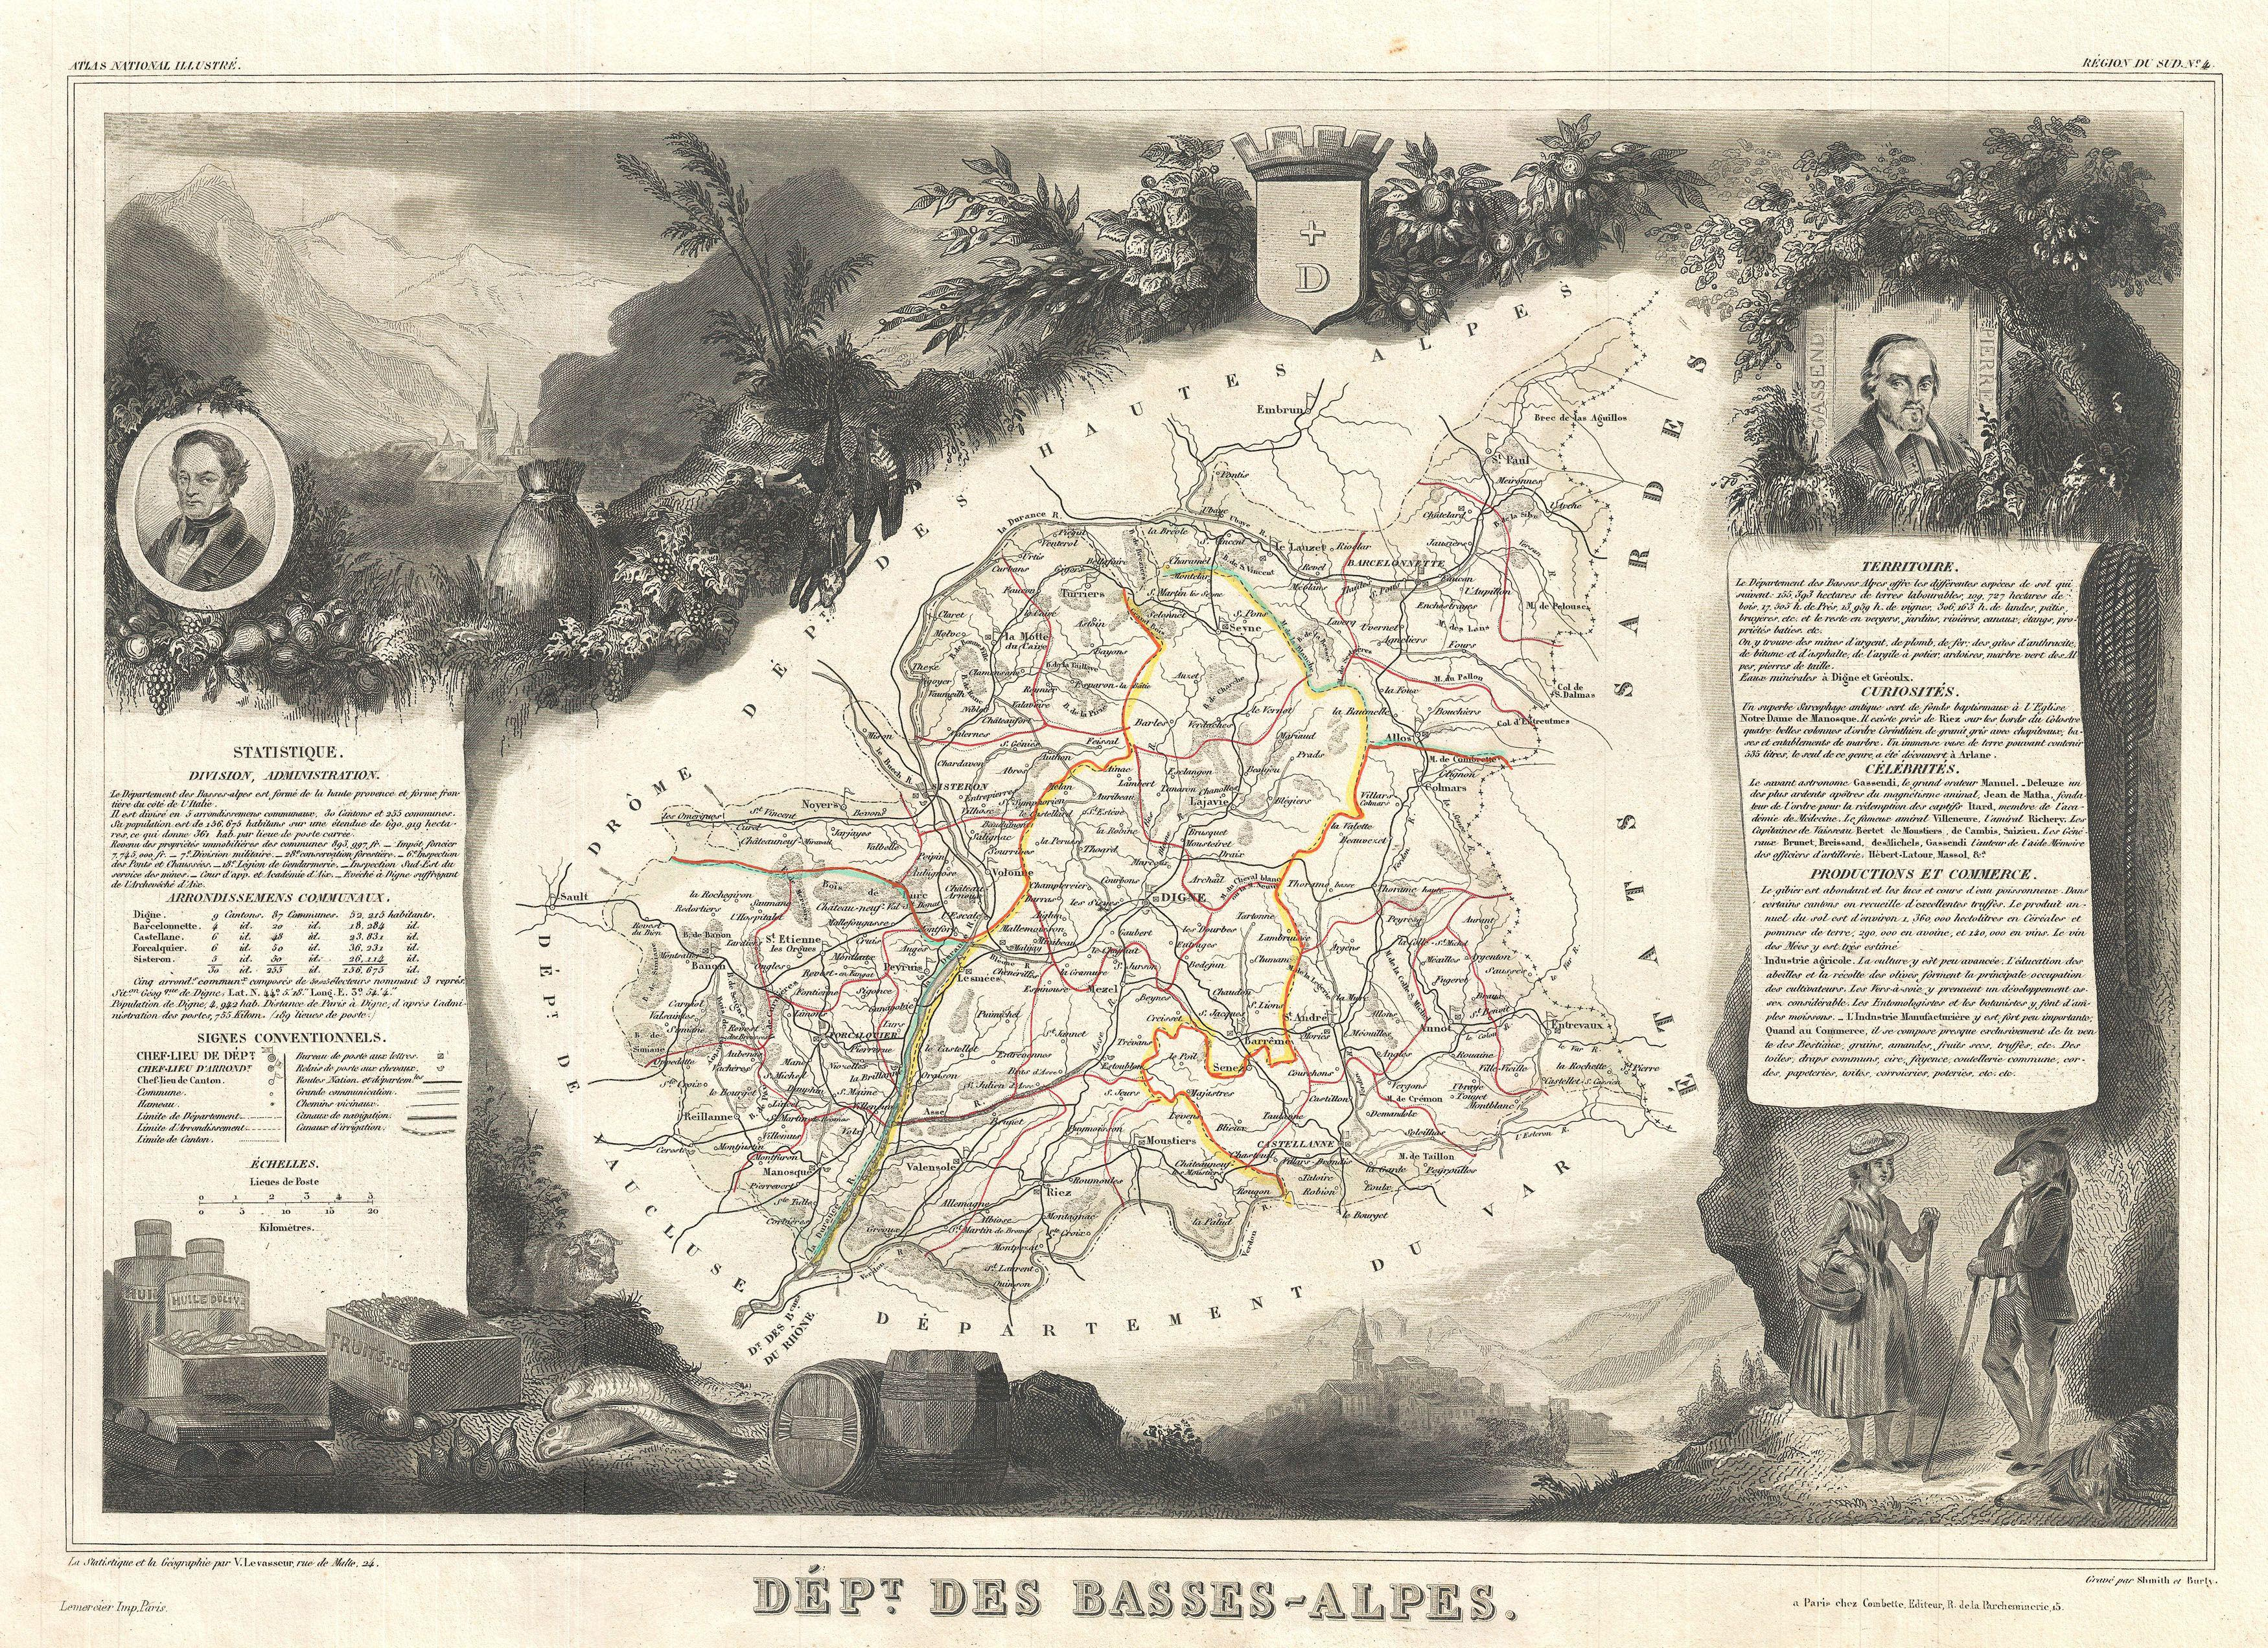 File:1852 Levasseur Map of the Department Basses-Alpes